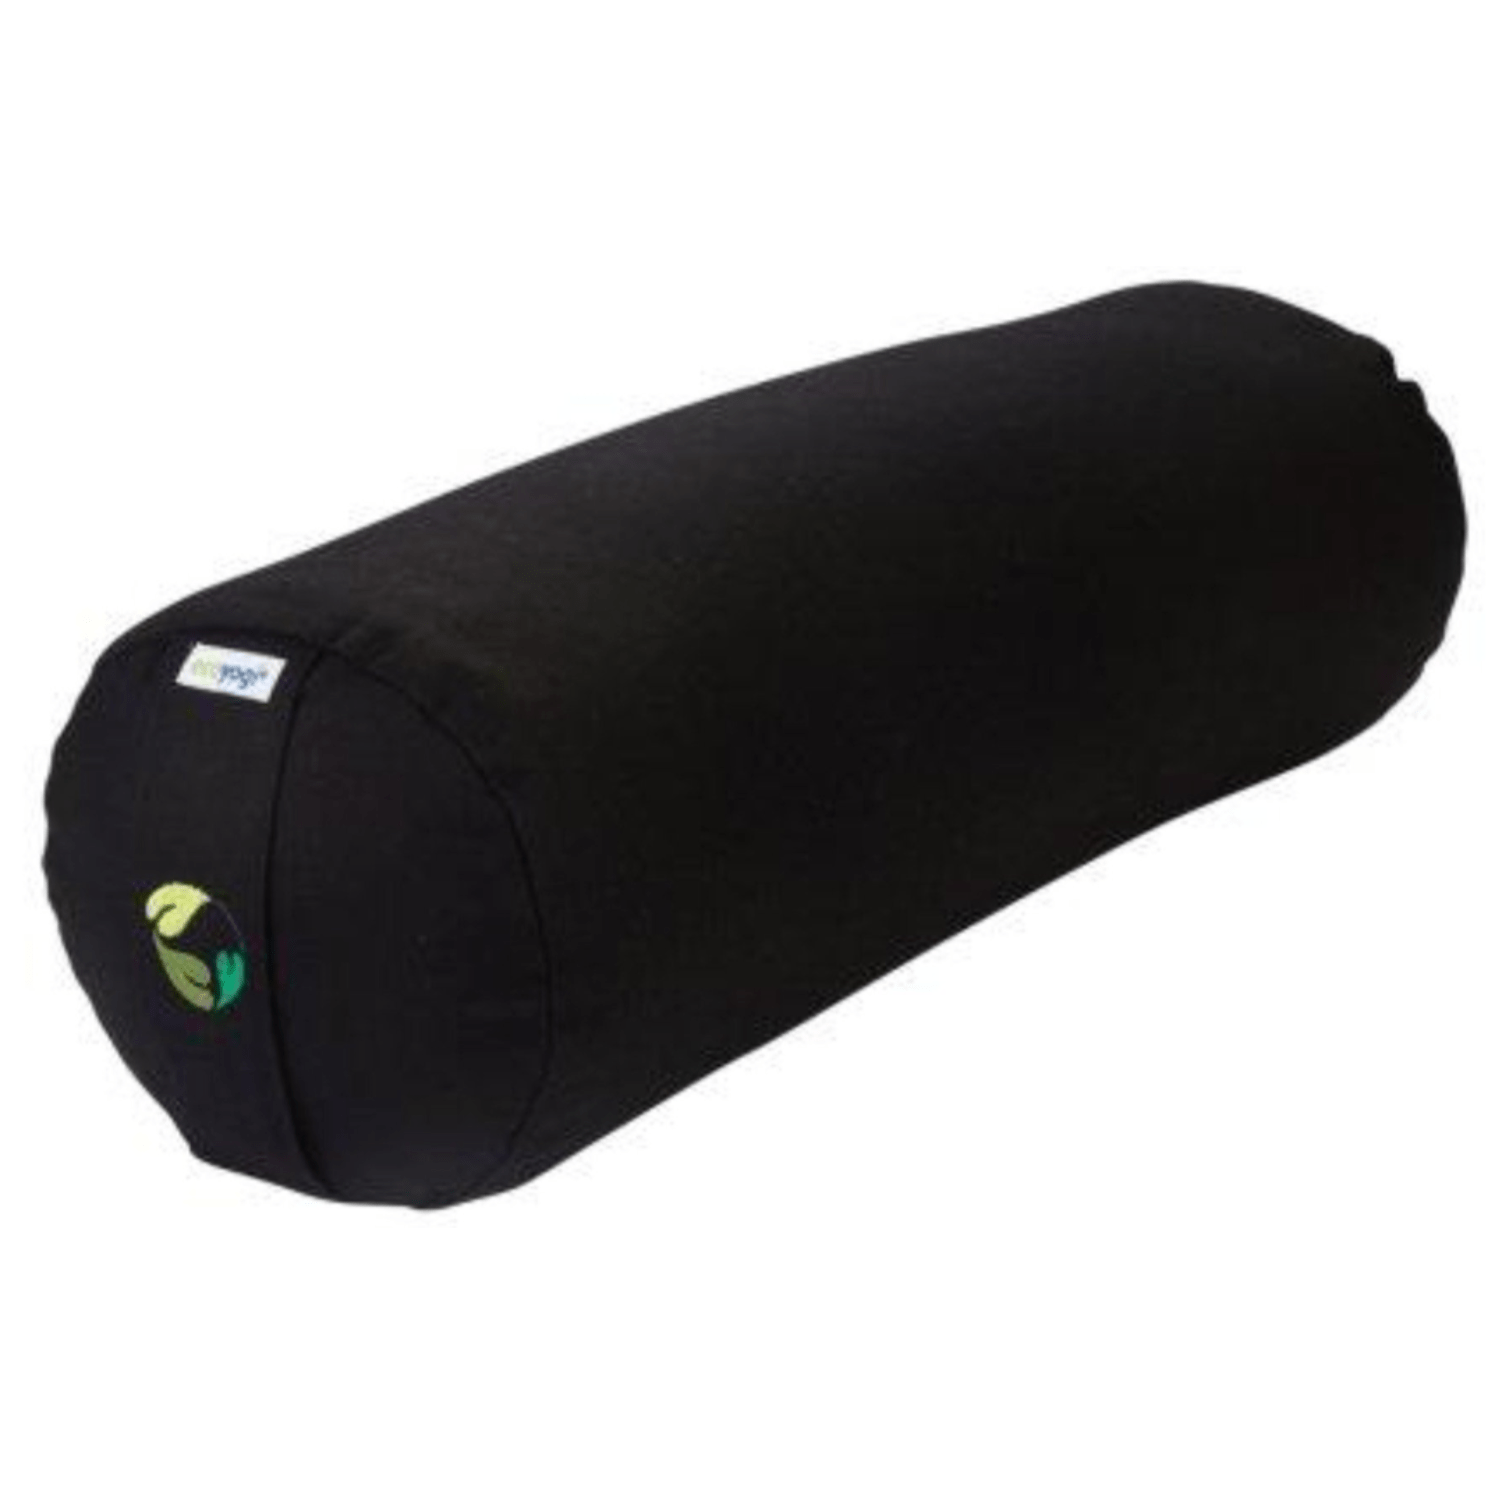 sustainable gifts Ecoyogi Black Organic cotton yoga bolster - black